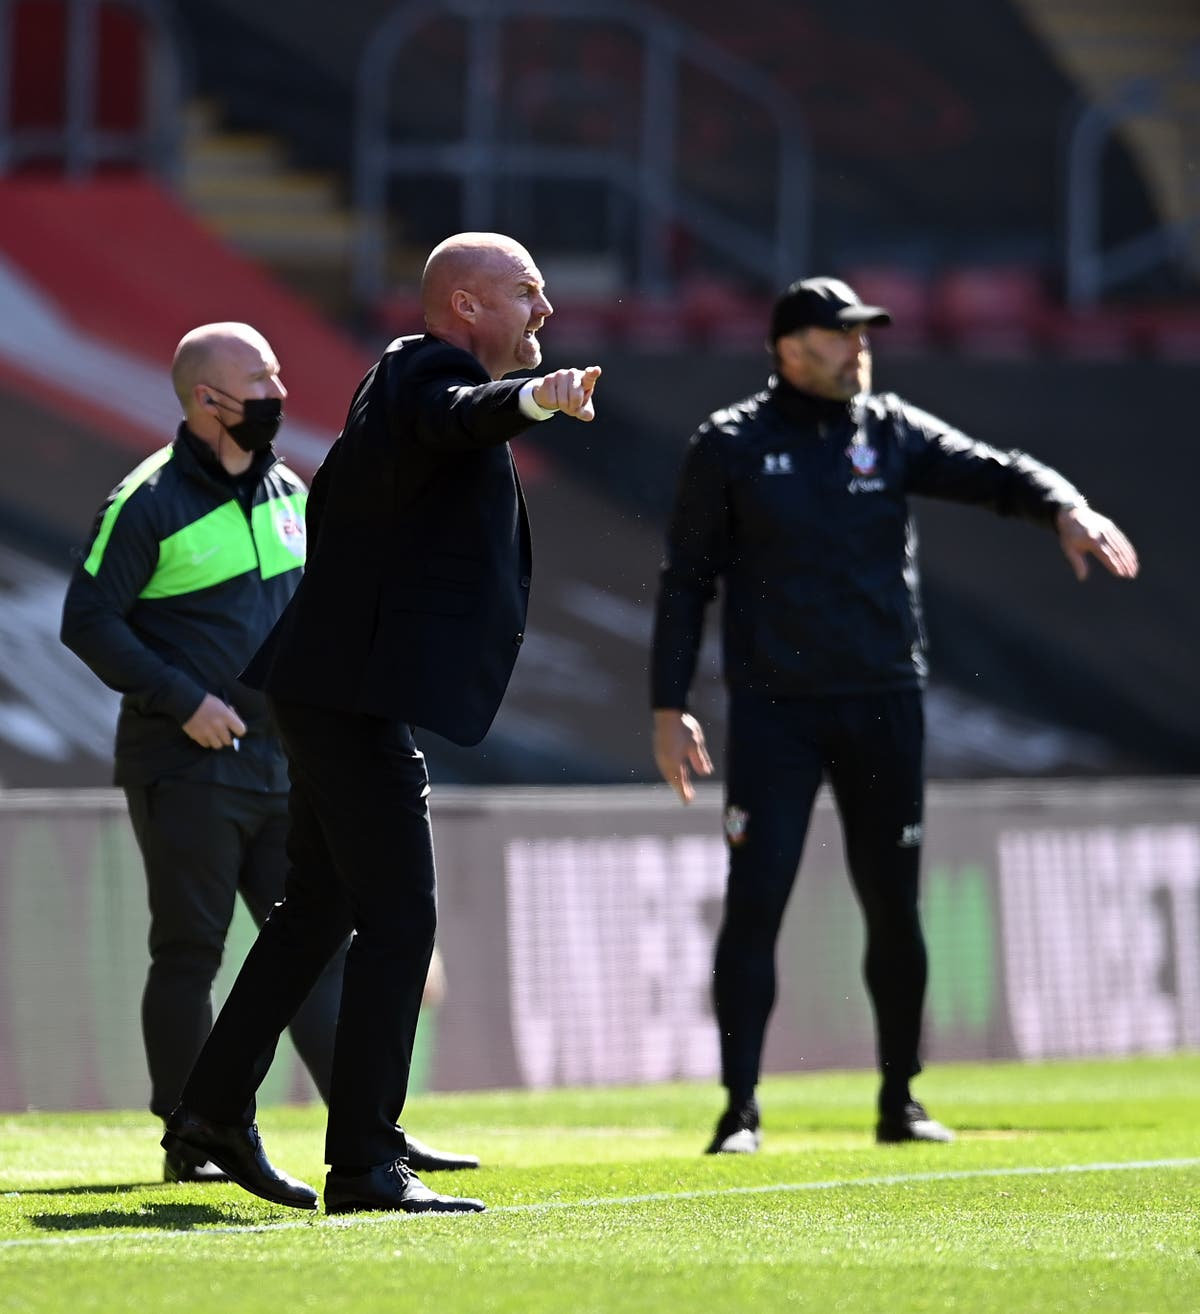 Sean Dyche has 'something special' – Ralph Hasenhuttl